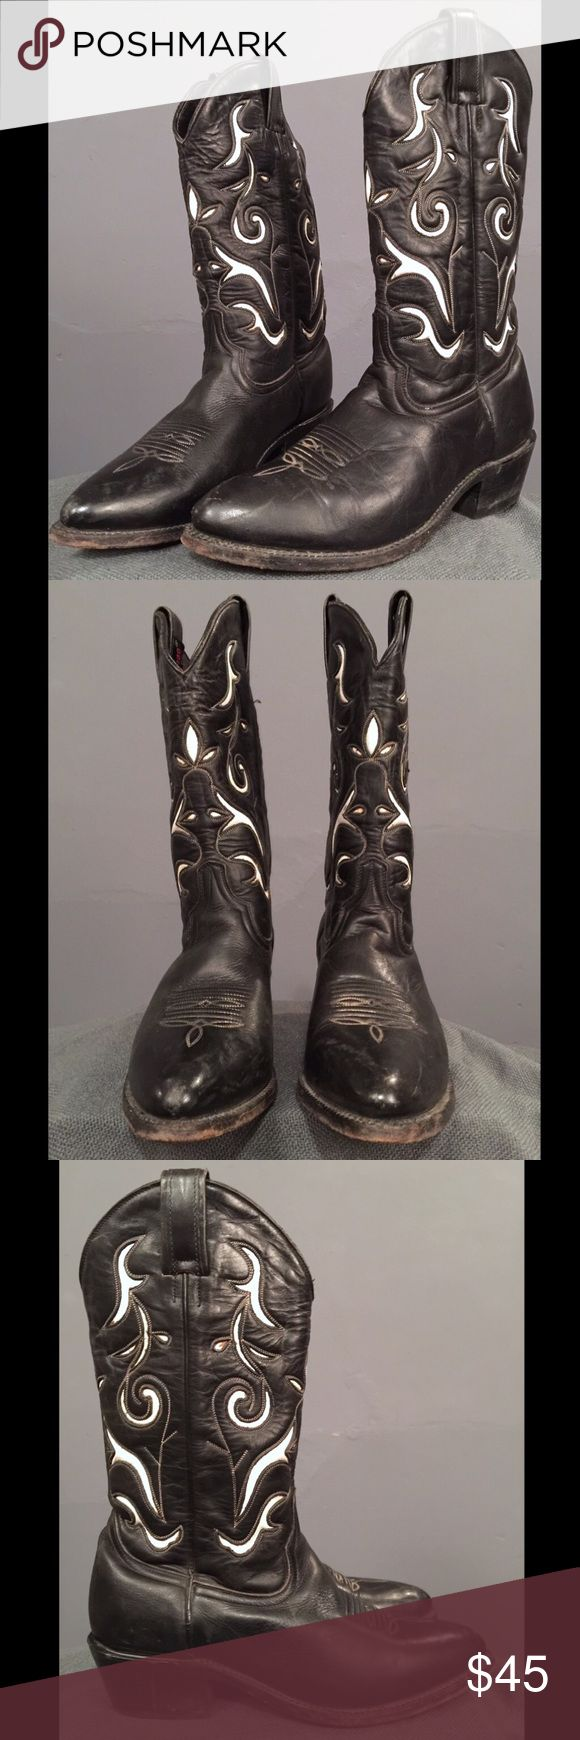 Vintage Durango Rockabilly Cowboy Boots 7.5 Excellent condition. Leather soles. White inlay has some minor discoloration from glue which is hardly noticeable when being worn. Marked 7.5 B Durango Shoes